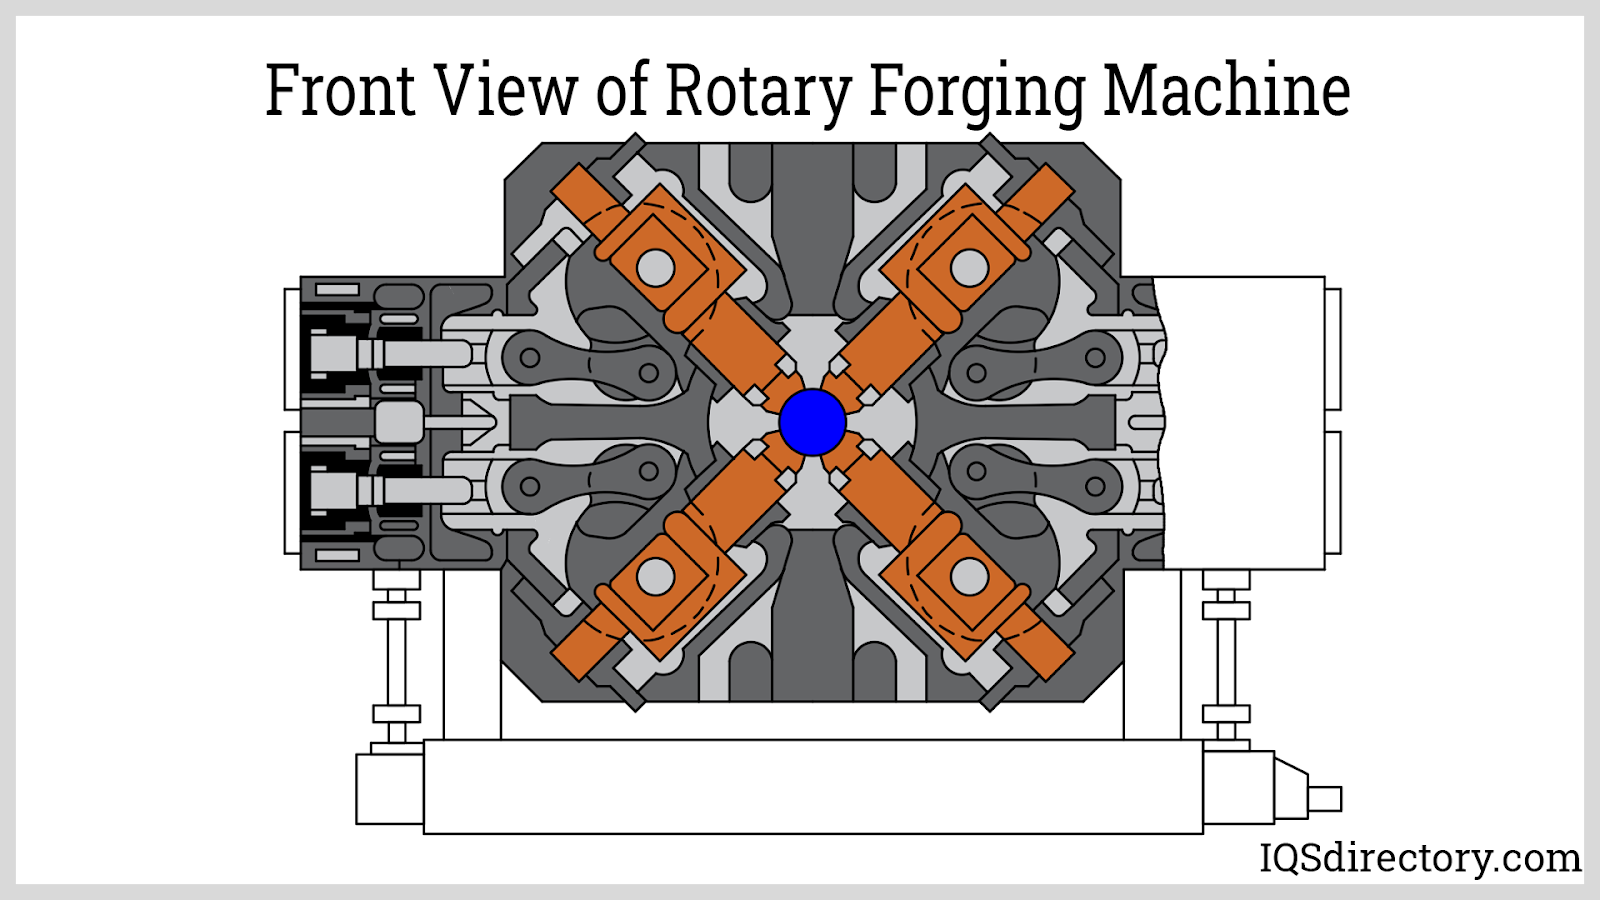 Front View of Rotary Forging Machine